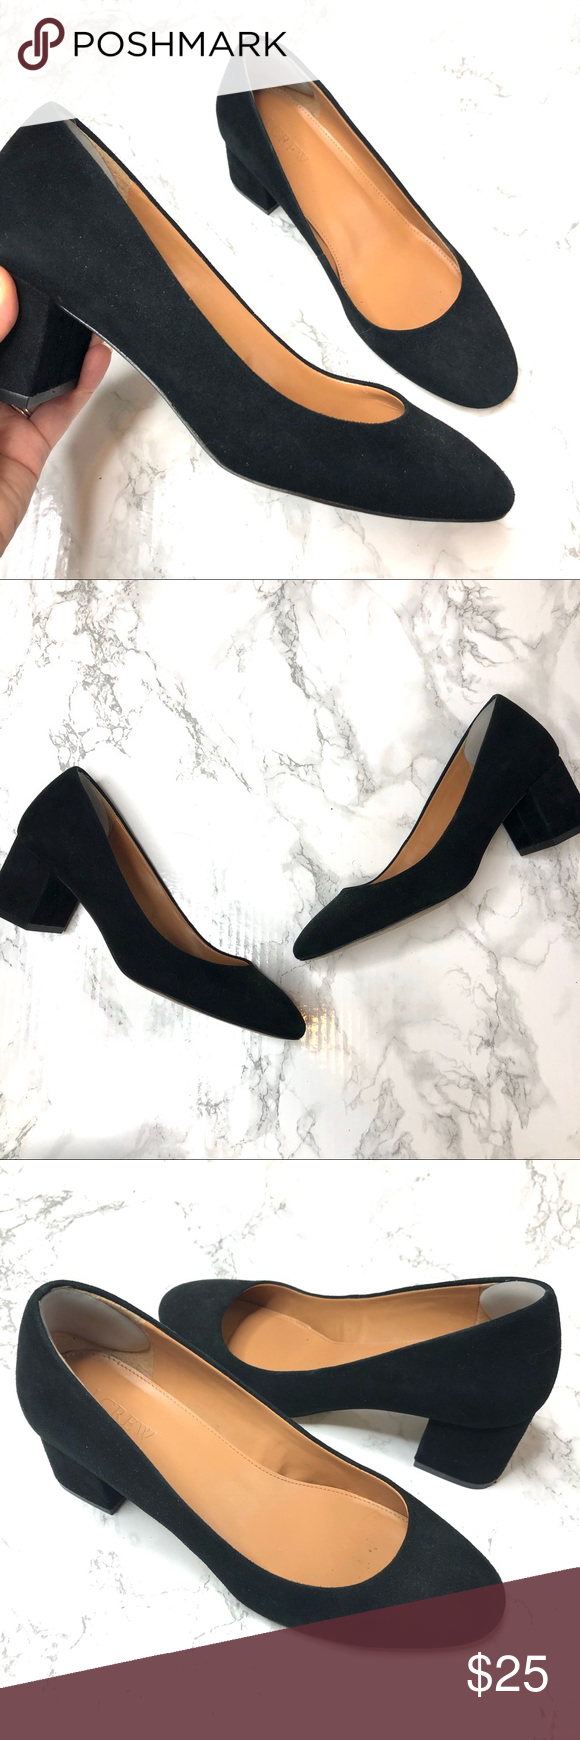 J Crew Factory Kitten Pointed Toe Black Suede Heel Heels Black Suede Heels Black Suede